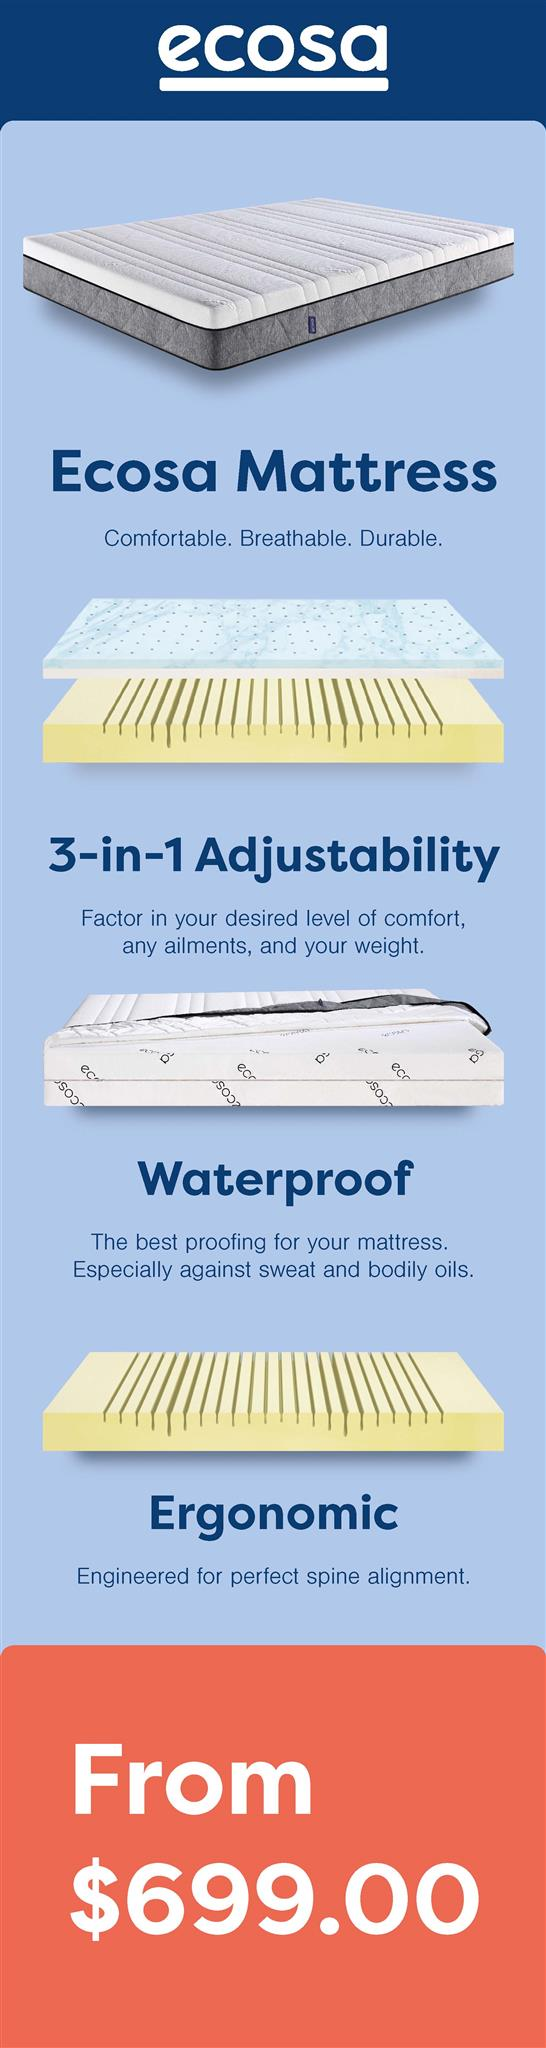 ecosa mattress review whirlpool